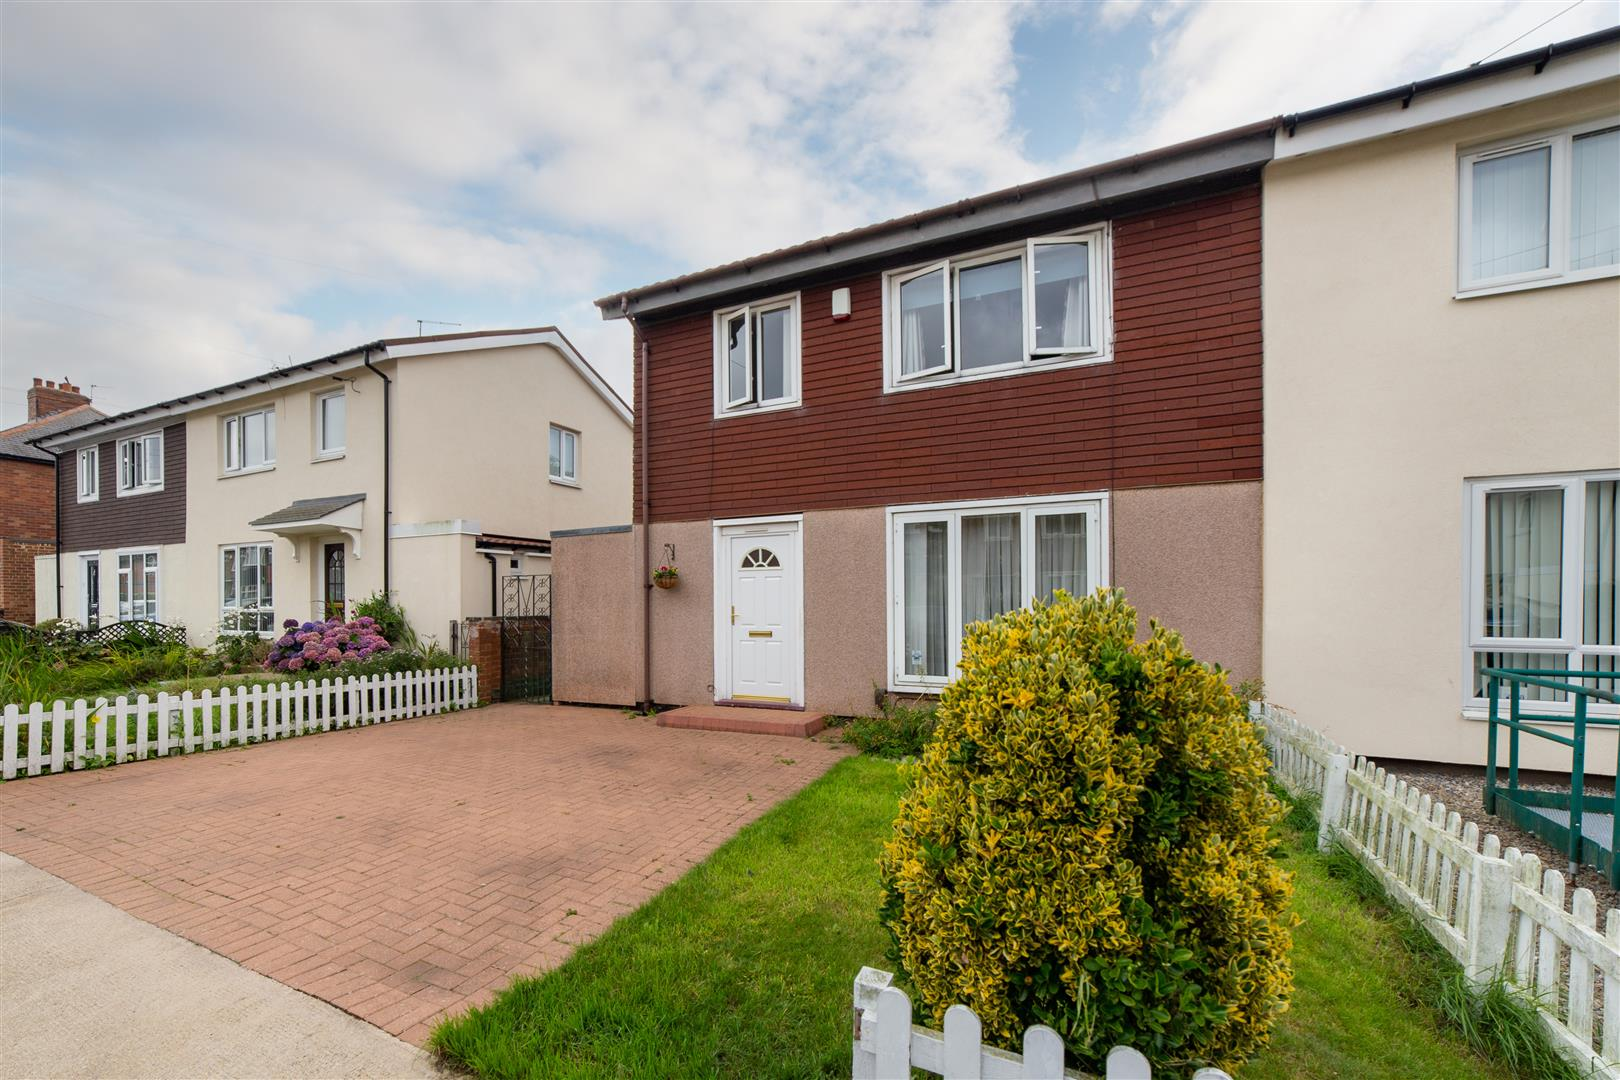 3 bed semi-detached house for sale in Parkside Avenue, Newcastle Upon Tyne, NE7